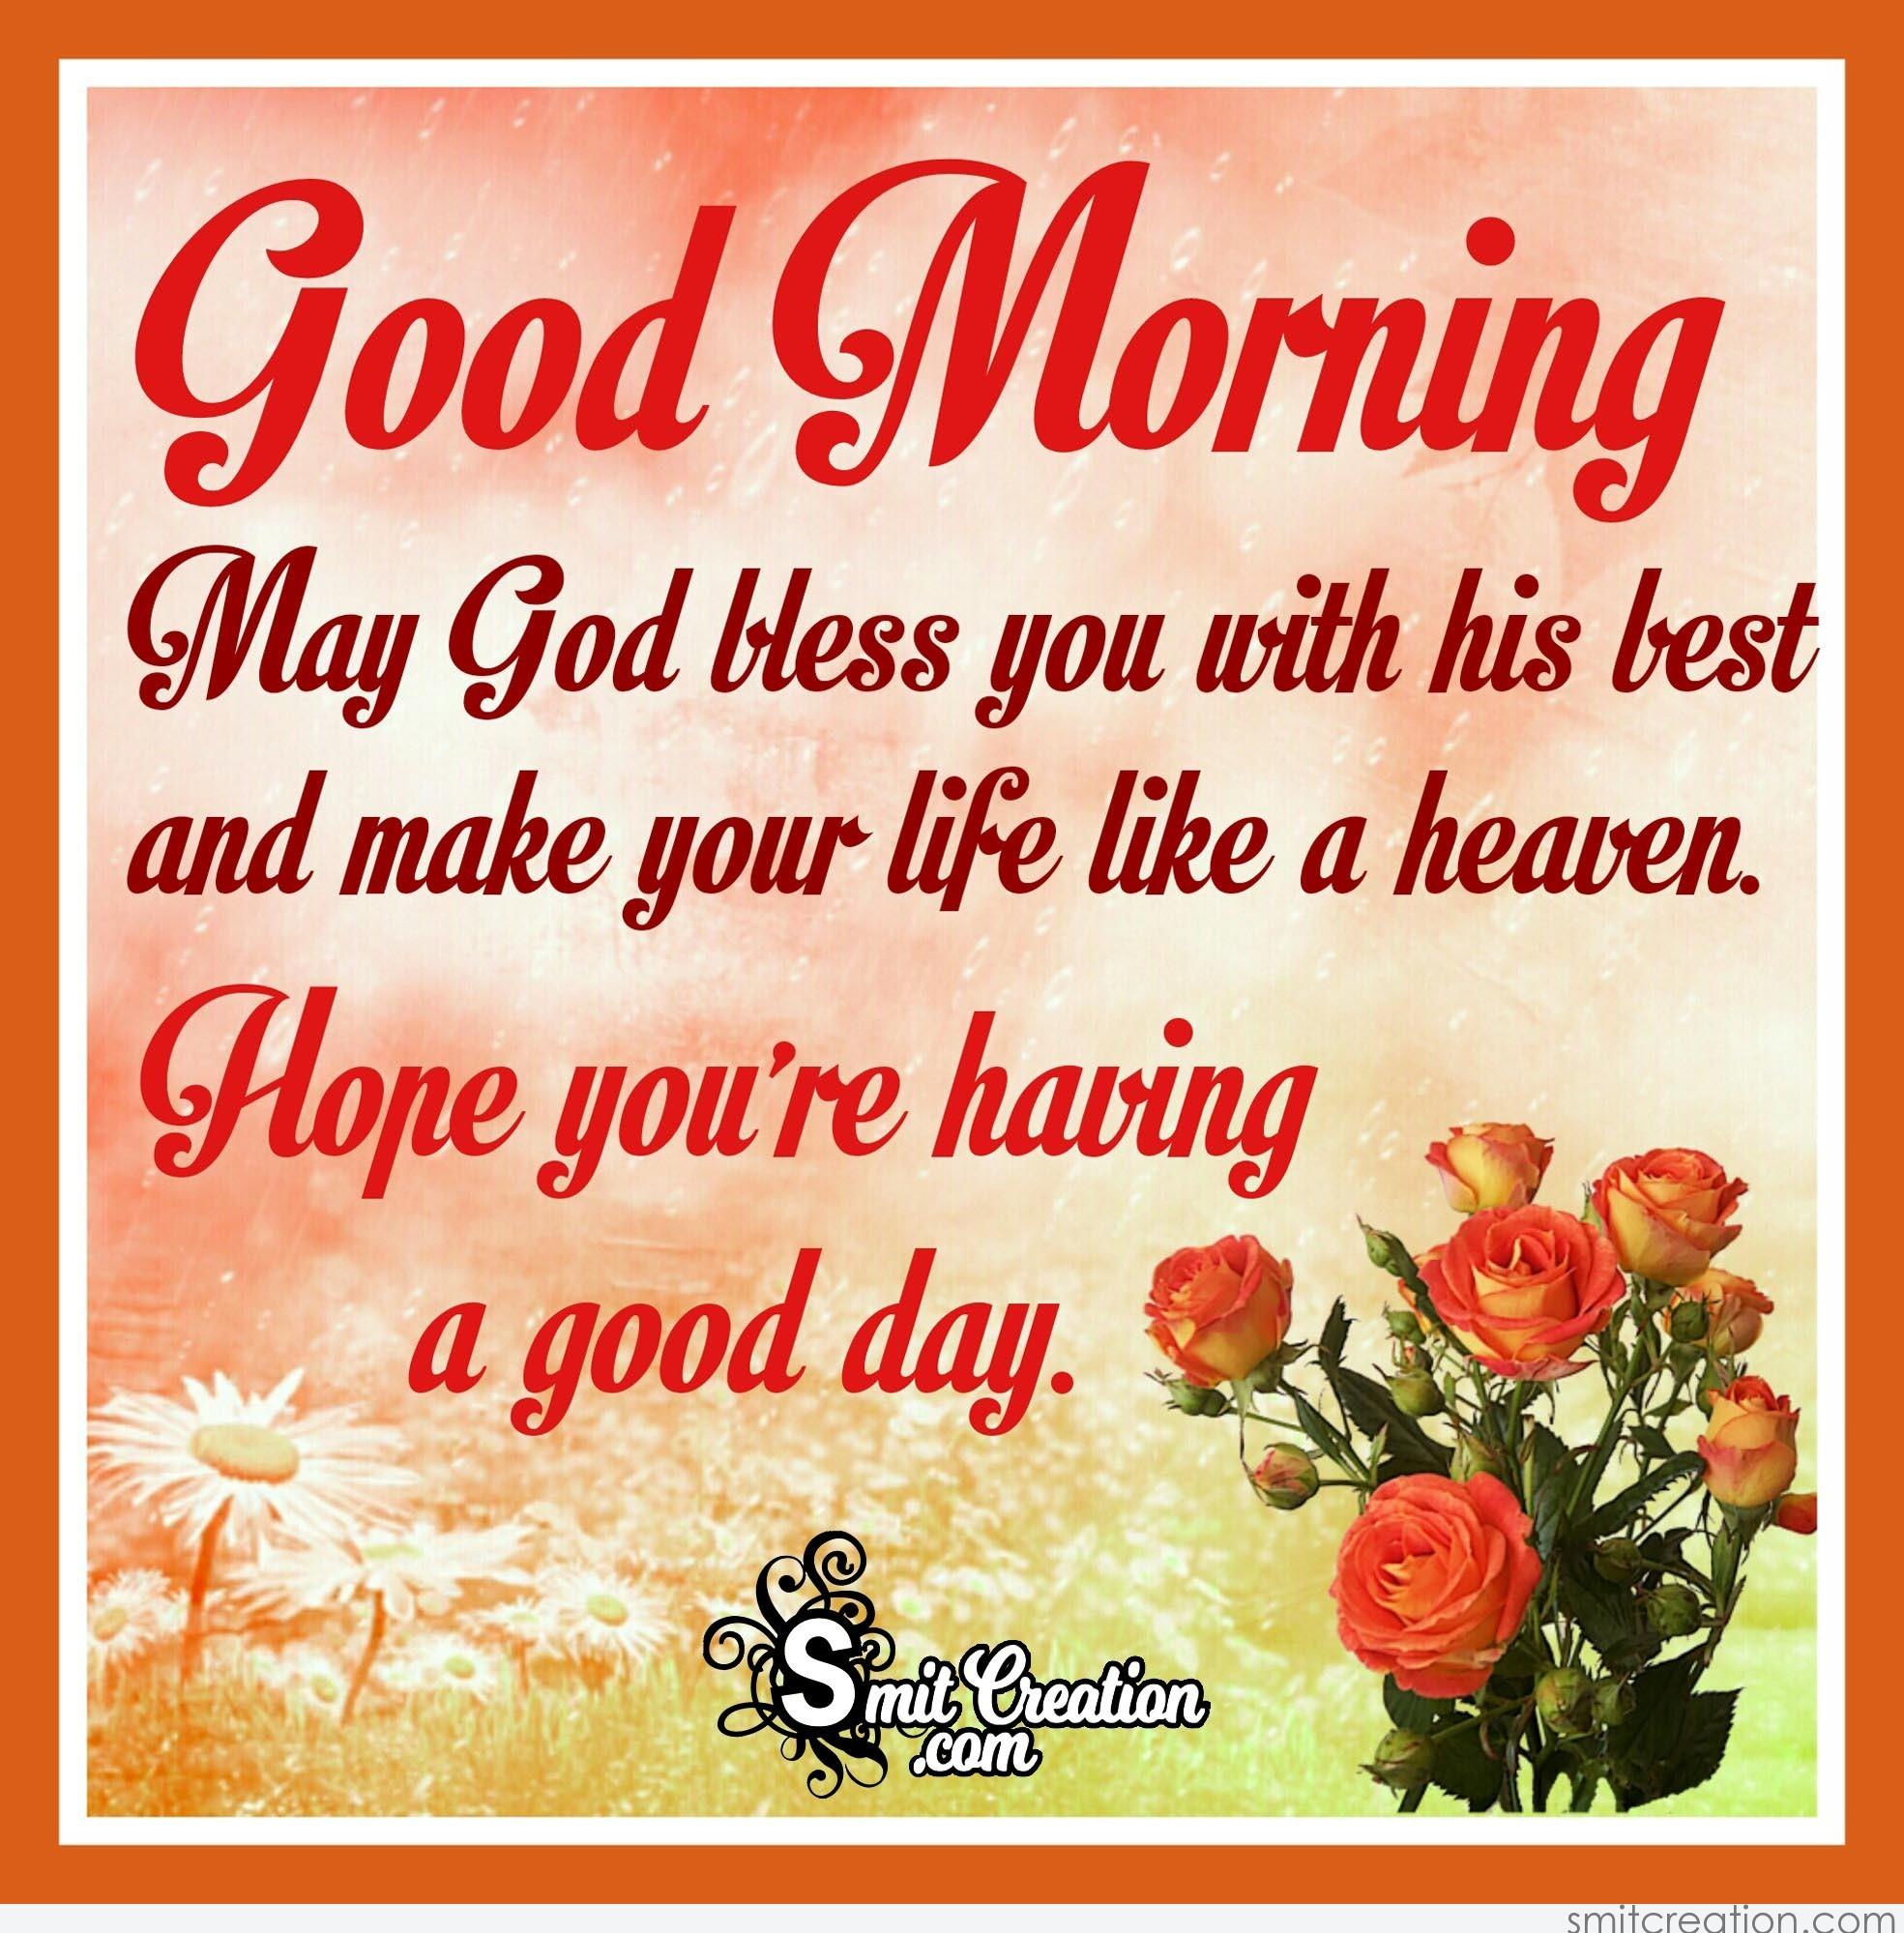 Good Morning May God Bless You With His Best Smitcreationcom